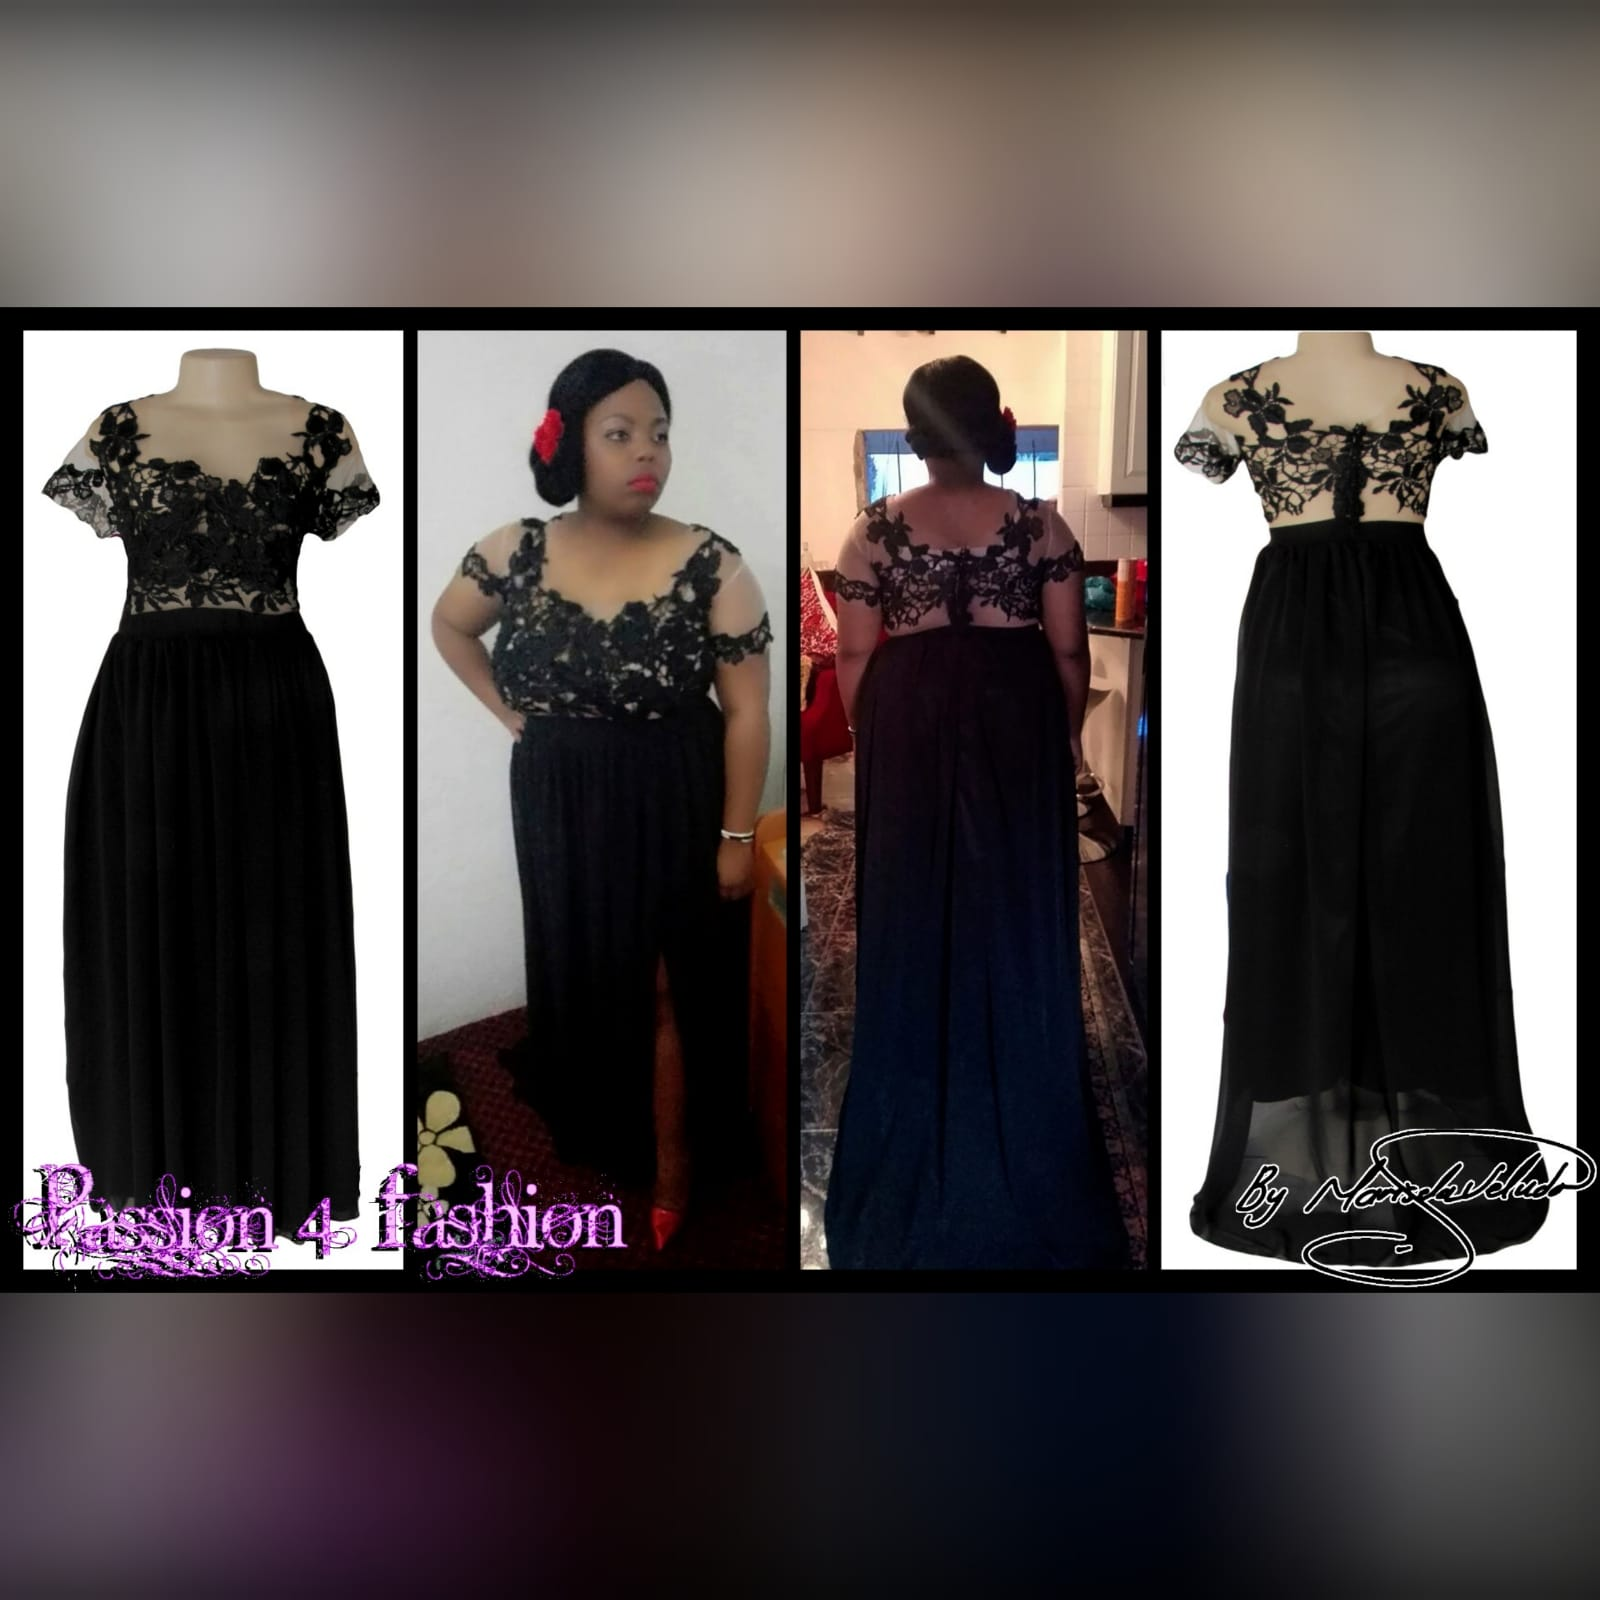 Black flowy lace bodice evening dress 3 black flowy lace bodice evening dress, an illusion bodice with an off shoulder effect. Back detailed with covered buttons